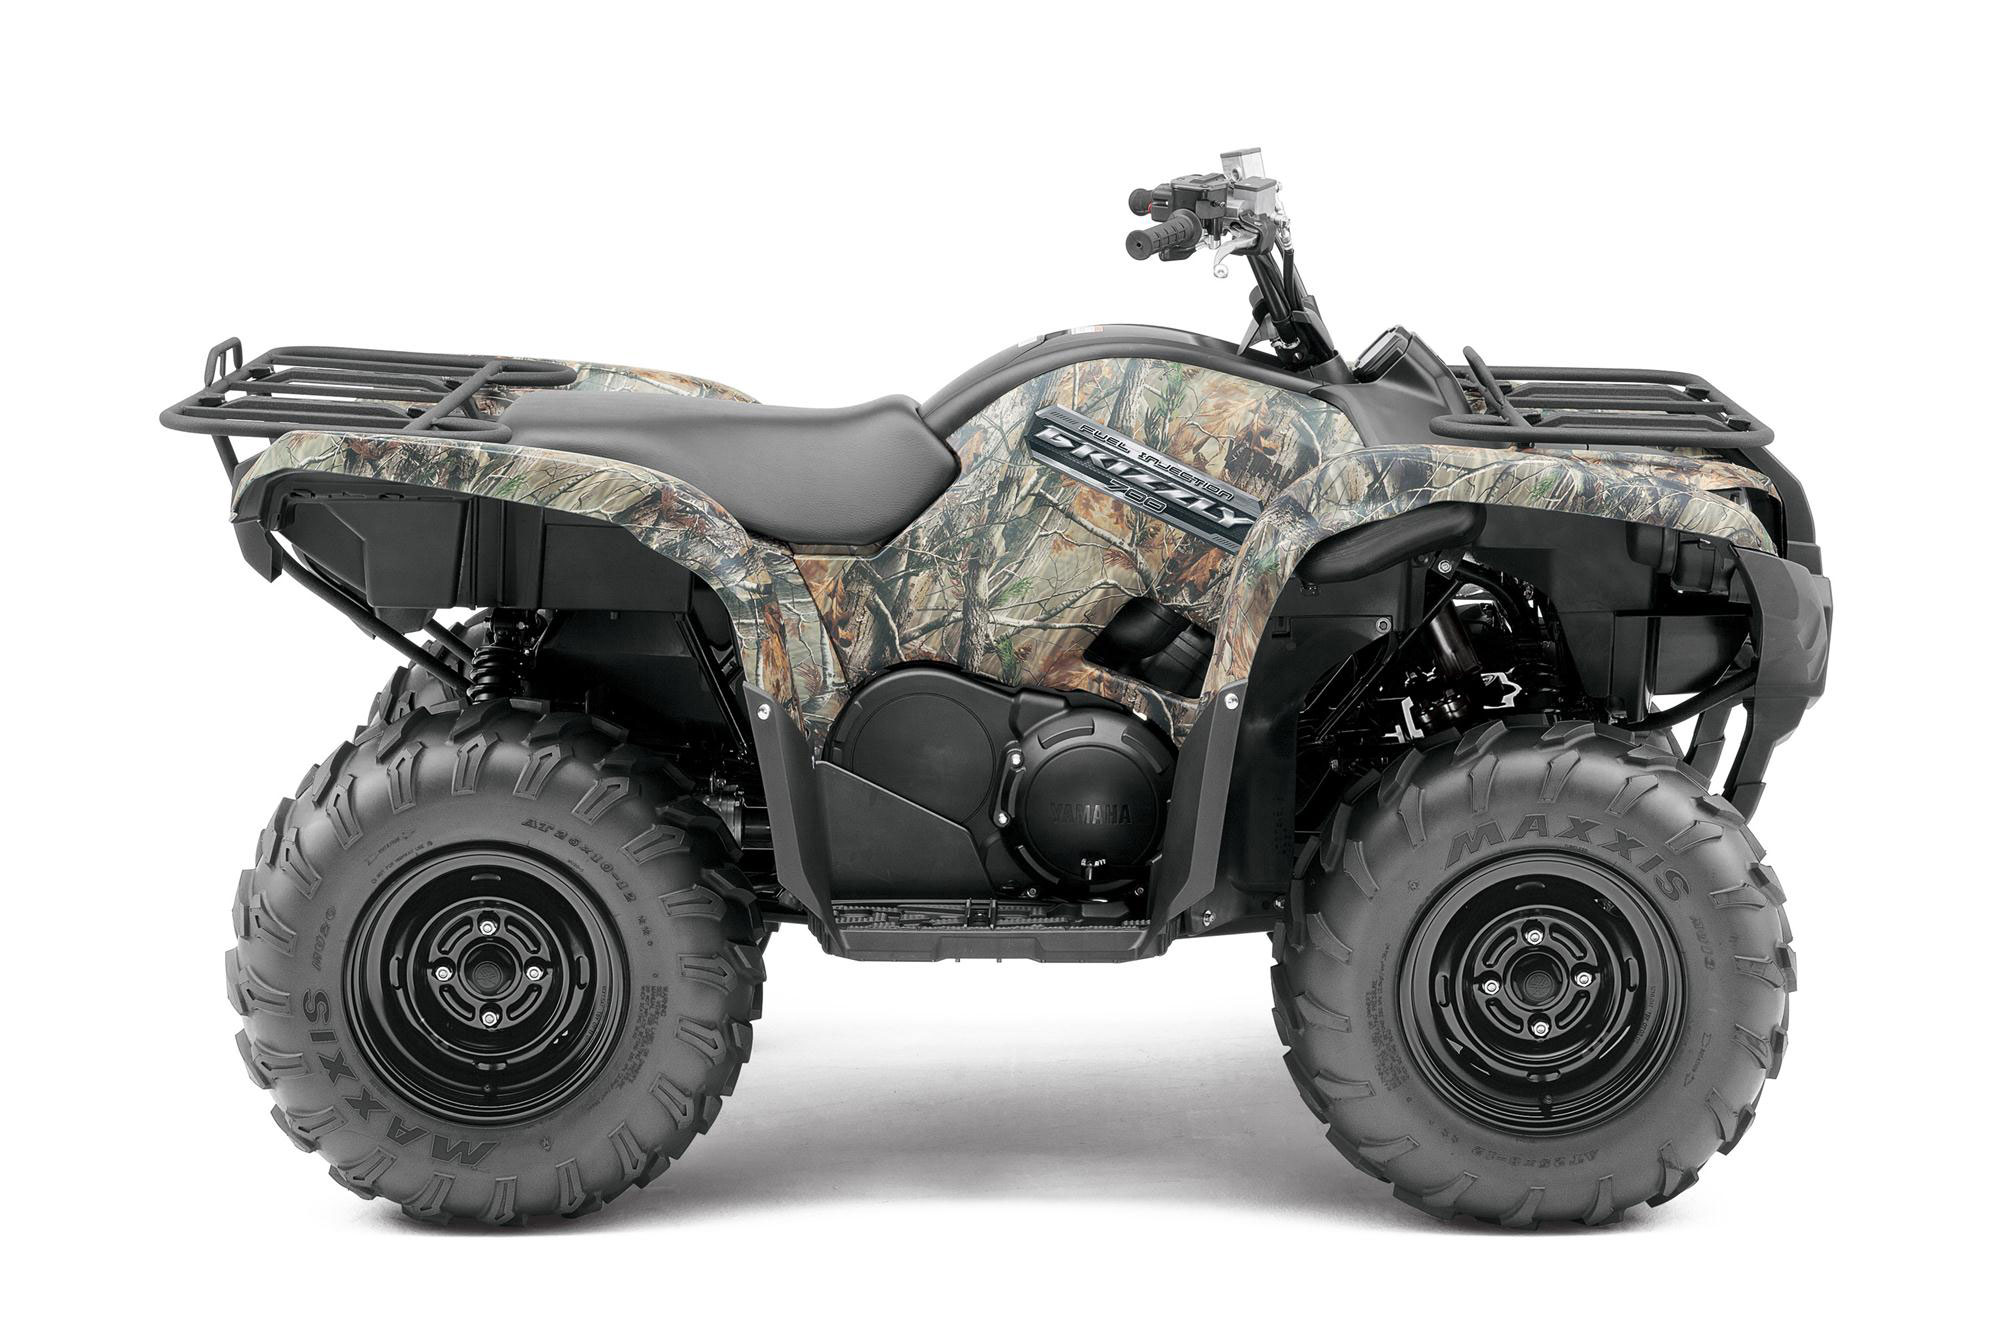 2013 yamaha grizzly 700 fi auto 4x4 review. Black Bedroom Furniture Sets. Home Design Ideas